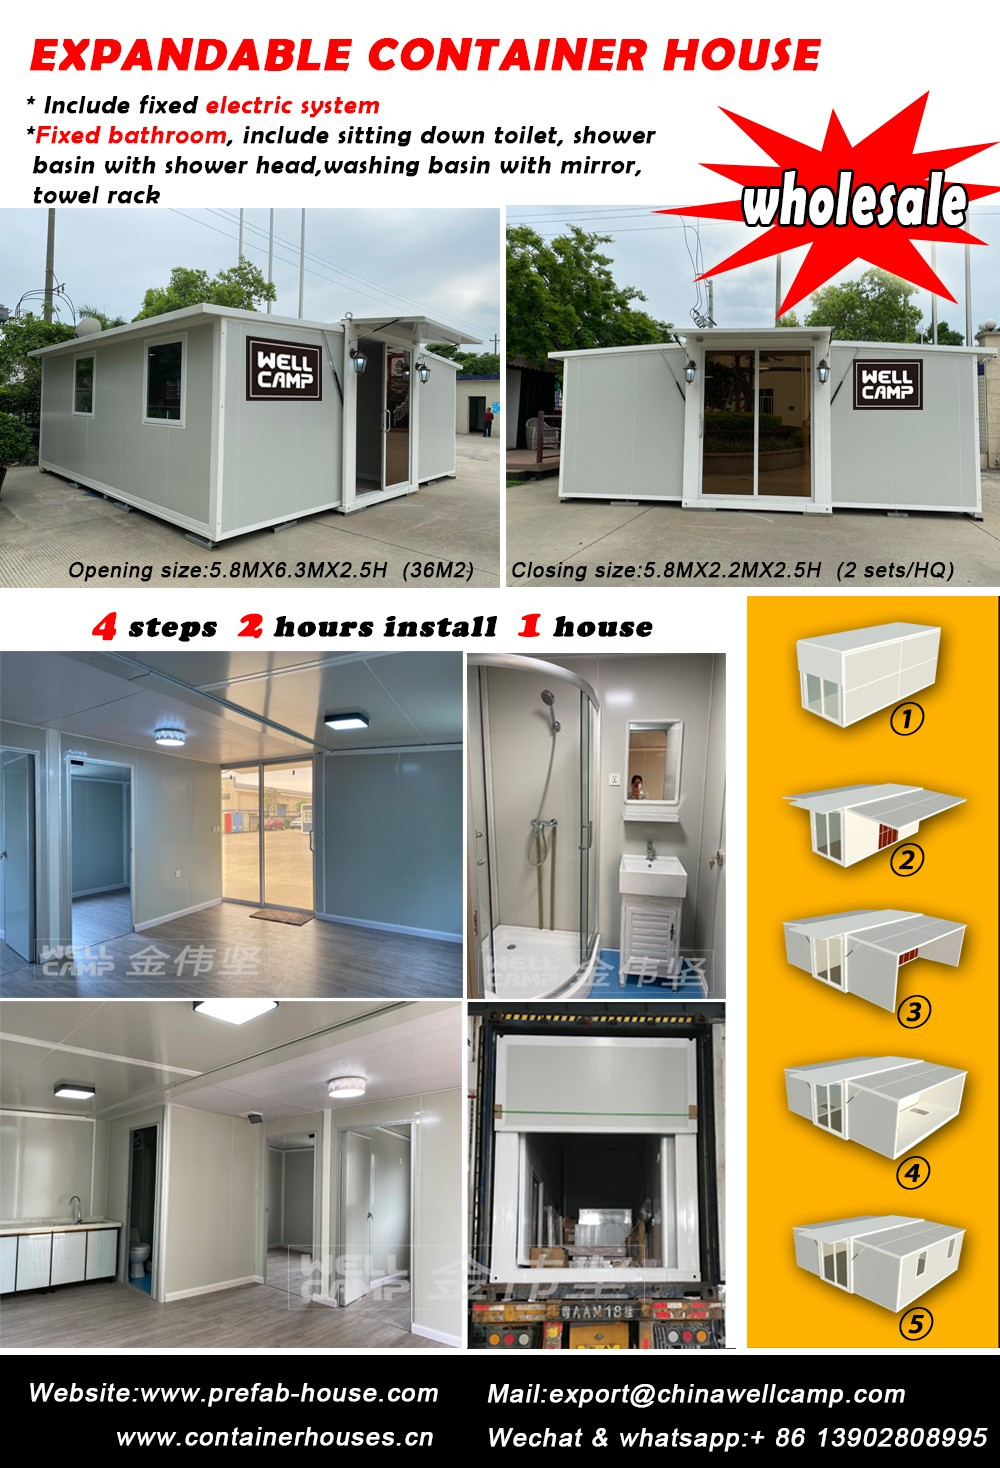 application-Wellcamp Expandable Container Houses In Costa Rica For Government Project-WELLCAMP-img